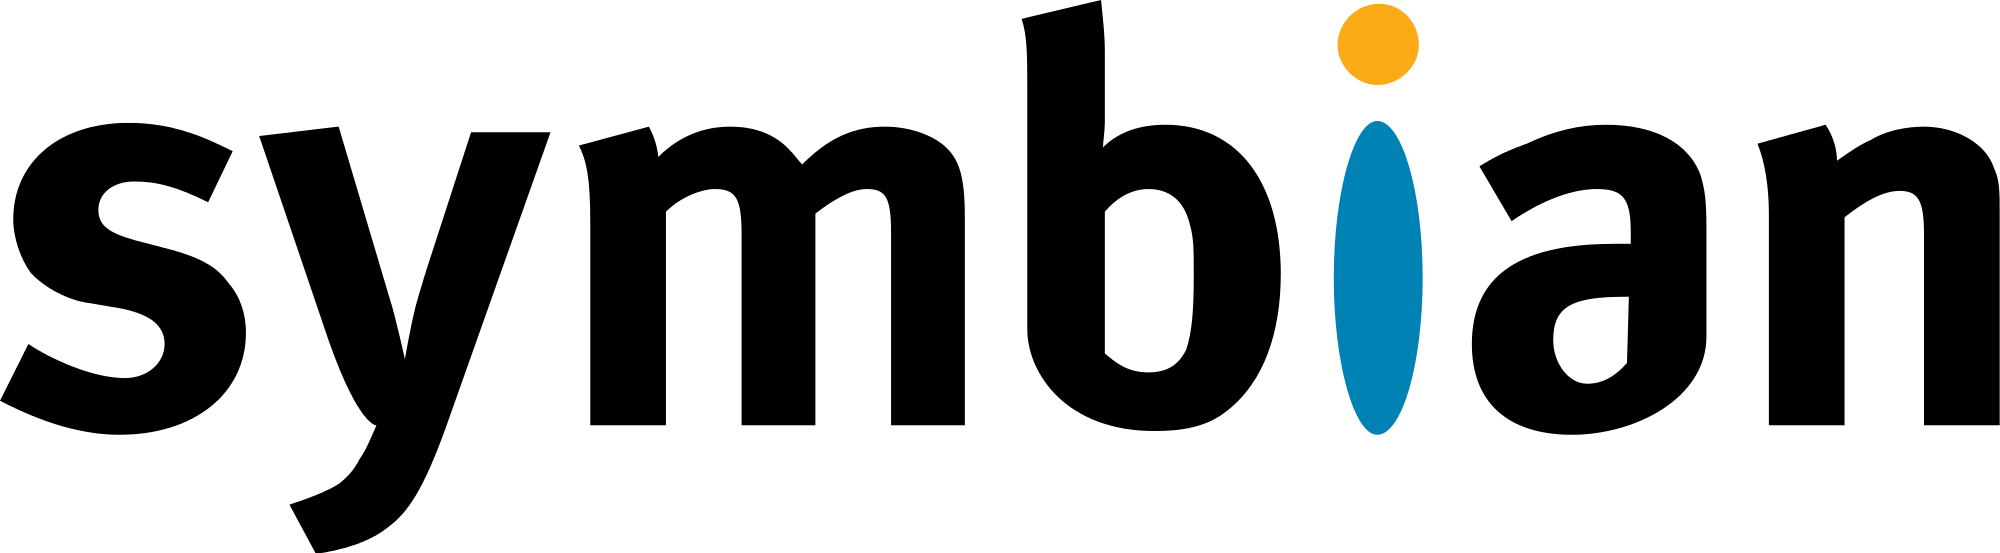 Symbian Mobile Operating System Logo